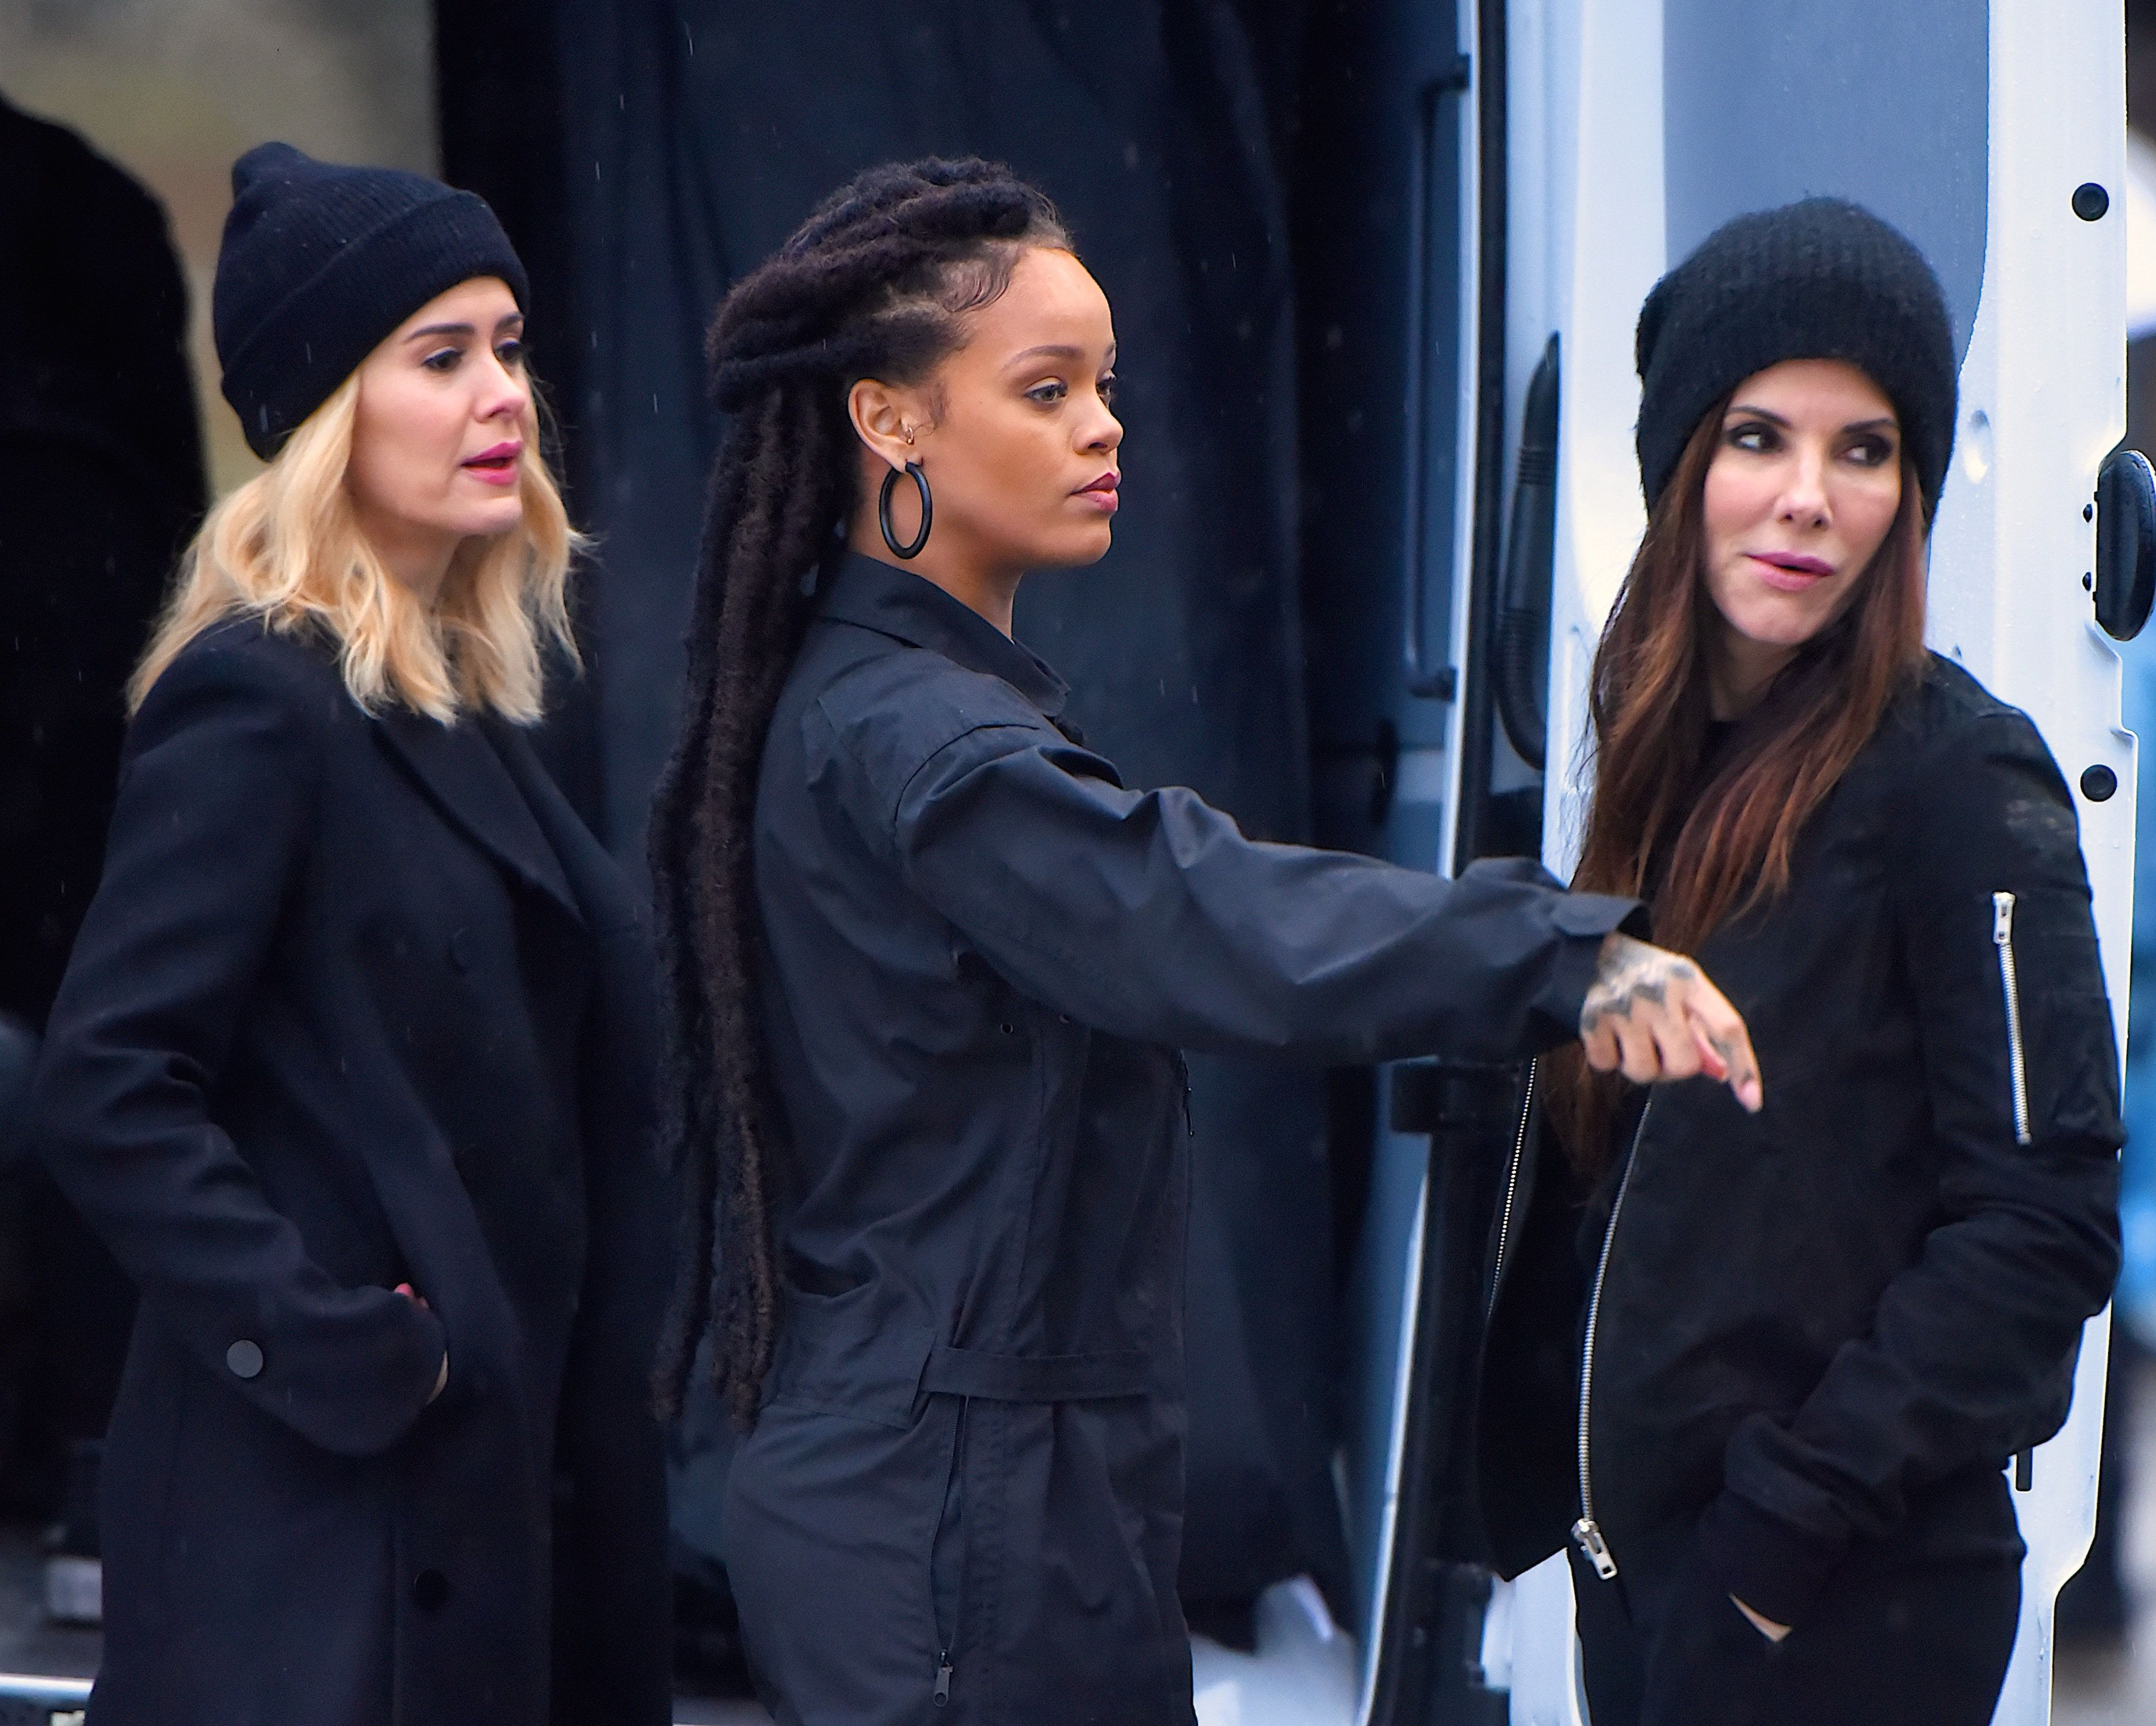 NEW YORK, NY - JANUARY 24:  Sarah Paulson, Rihanna and Sandra Bullock seen at the 'Ocean's Eight' film set in Central Park on  January 24, 2017 in New York City.  (Photo by Robert Kamau/GC Images)